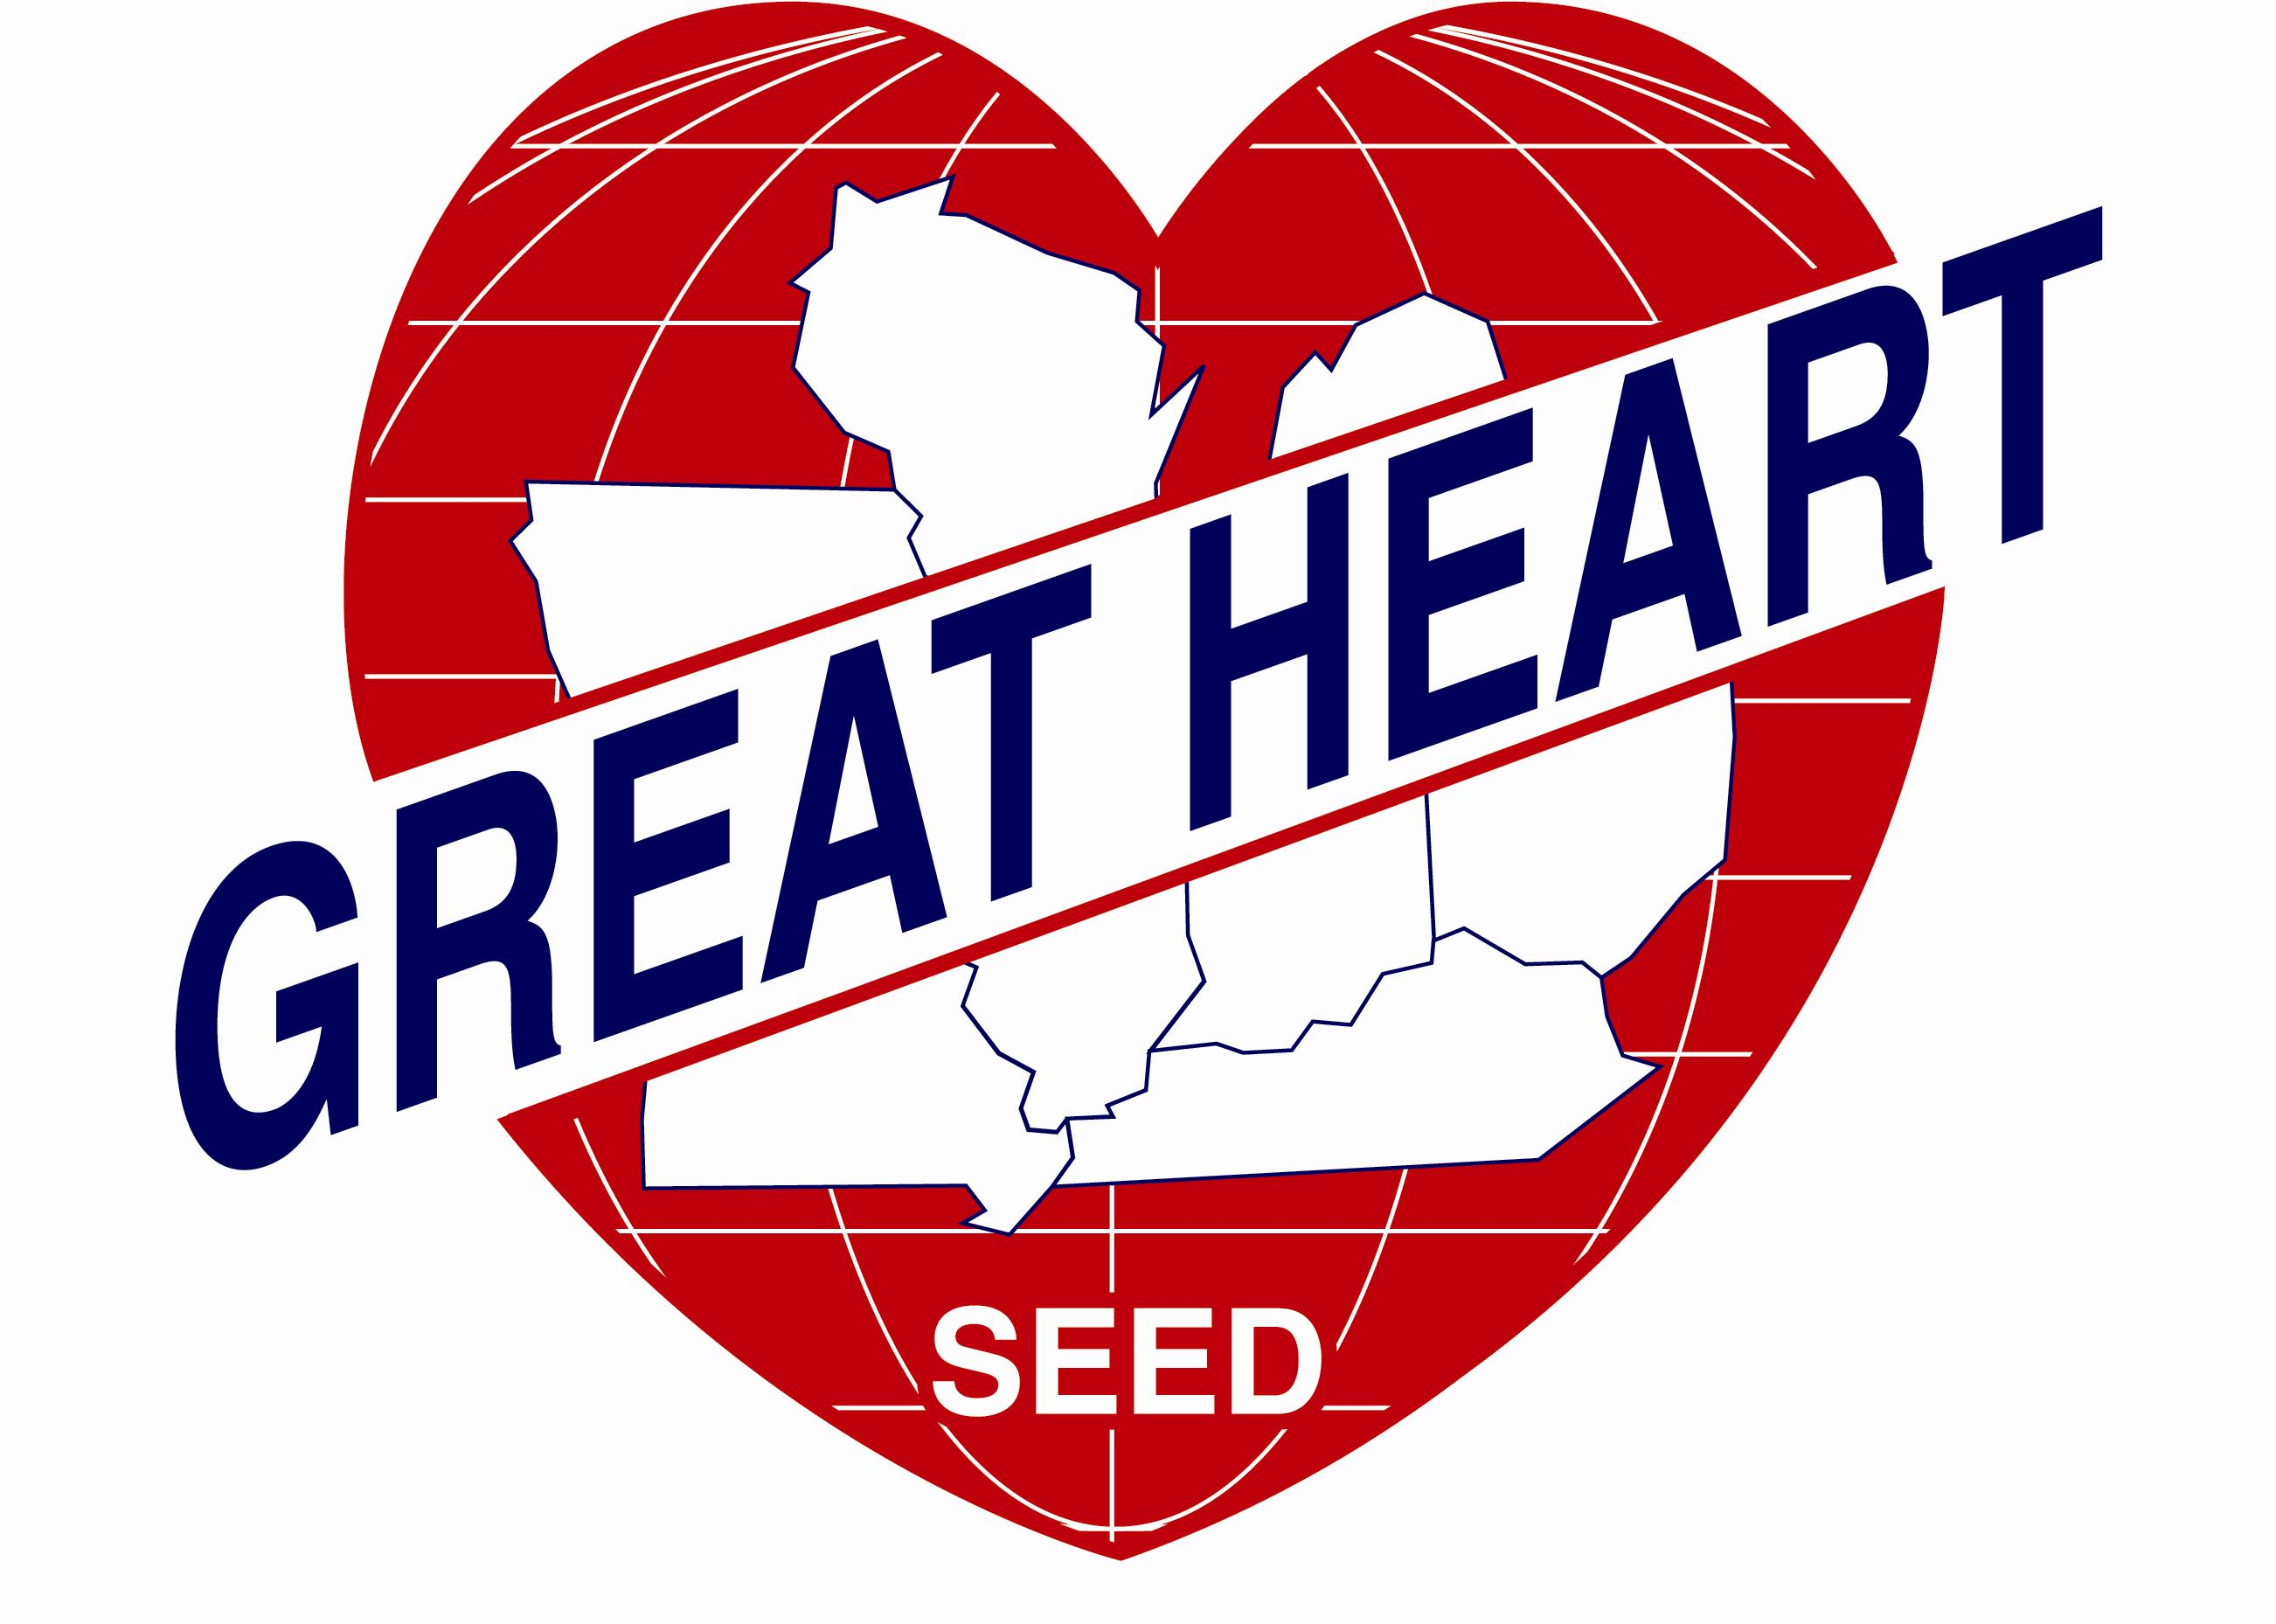 Great Heart Seed